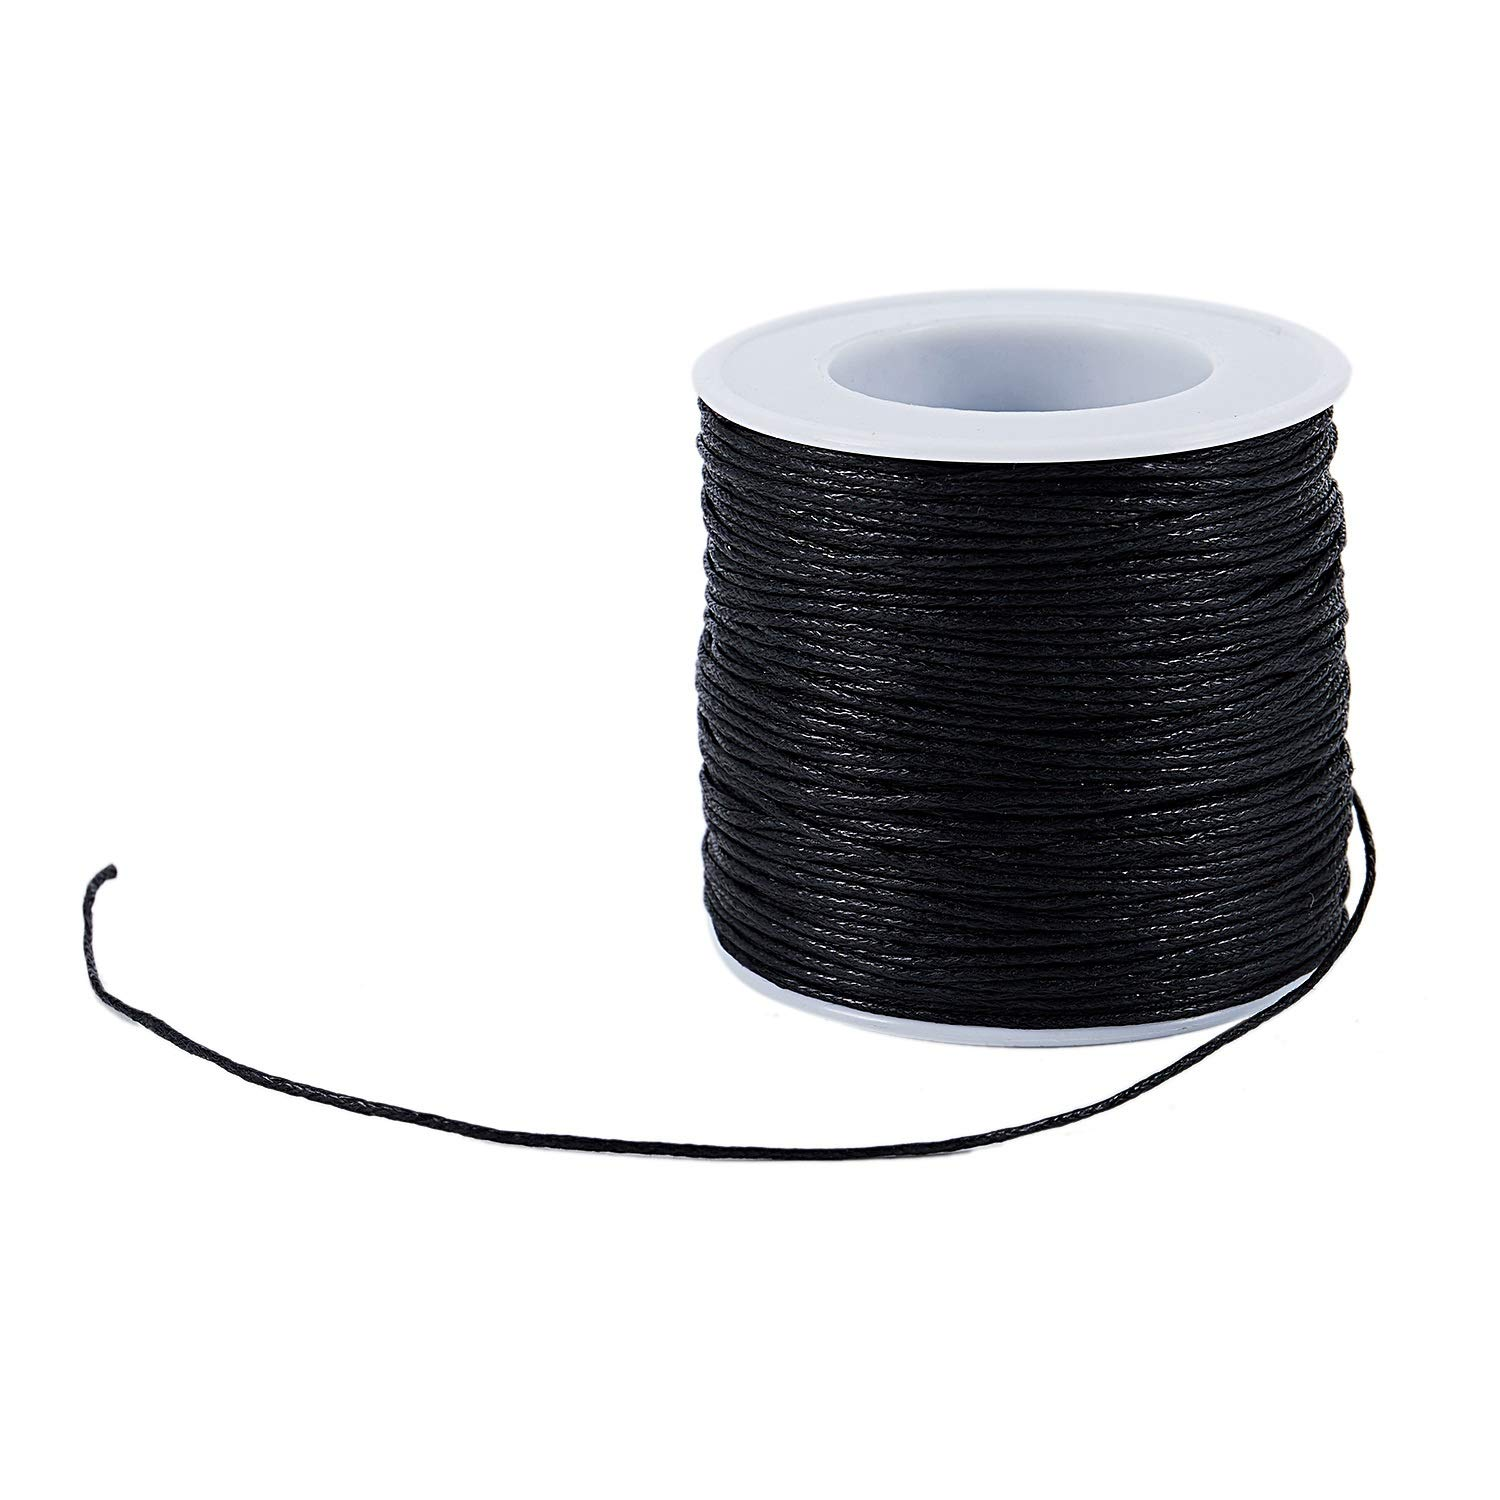 R SODIAL Roll Waxed Cotton Cords Wax String Cording for Beads Jewelry black 1.0mm